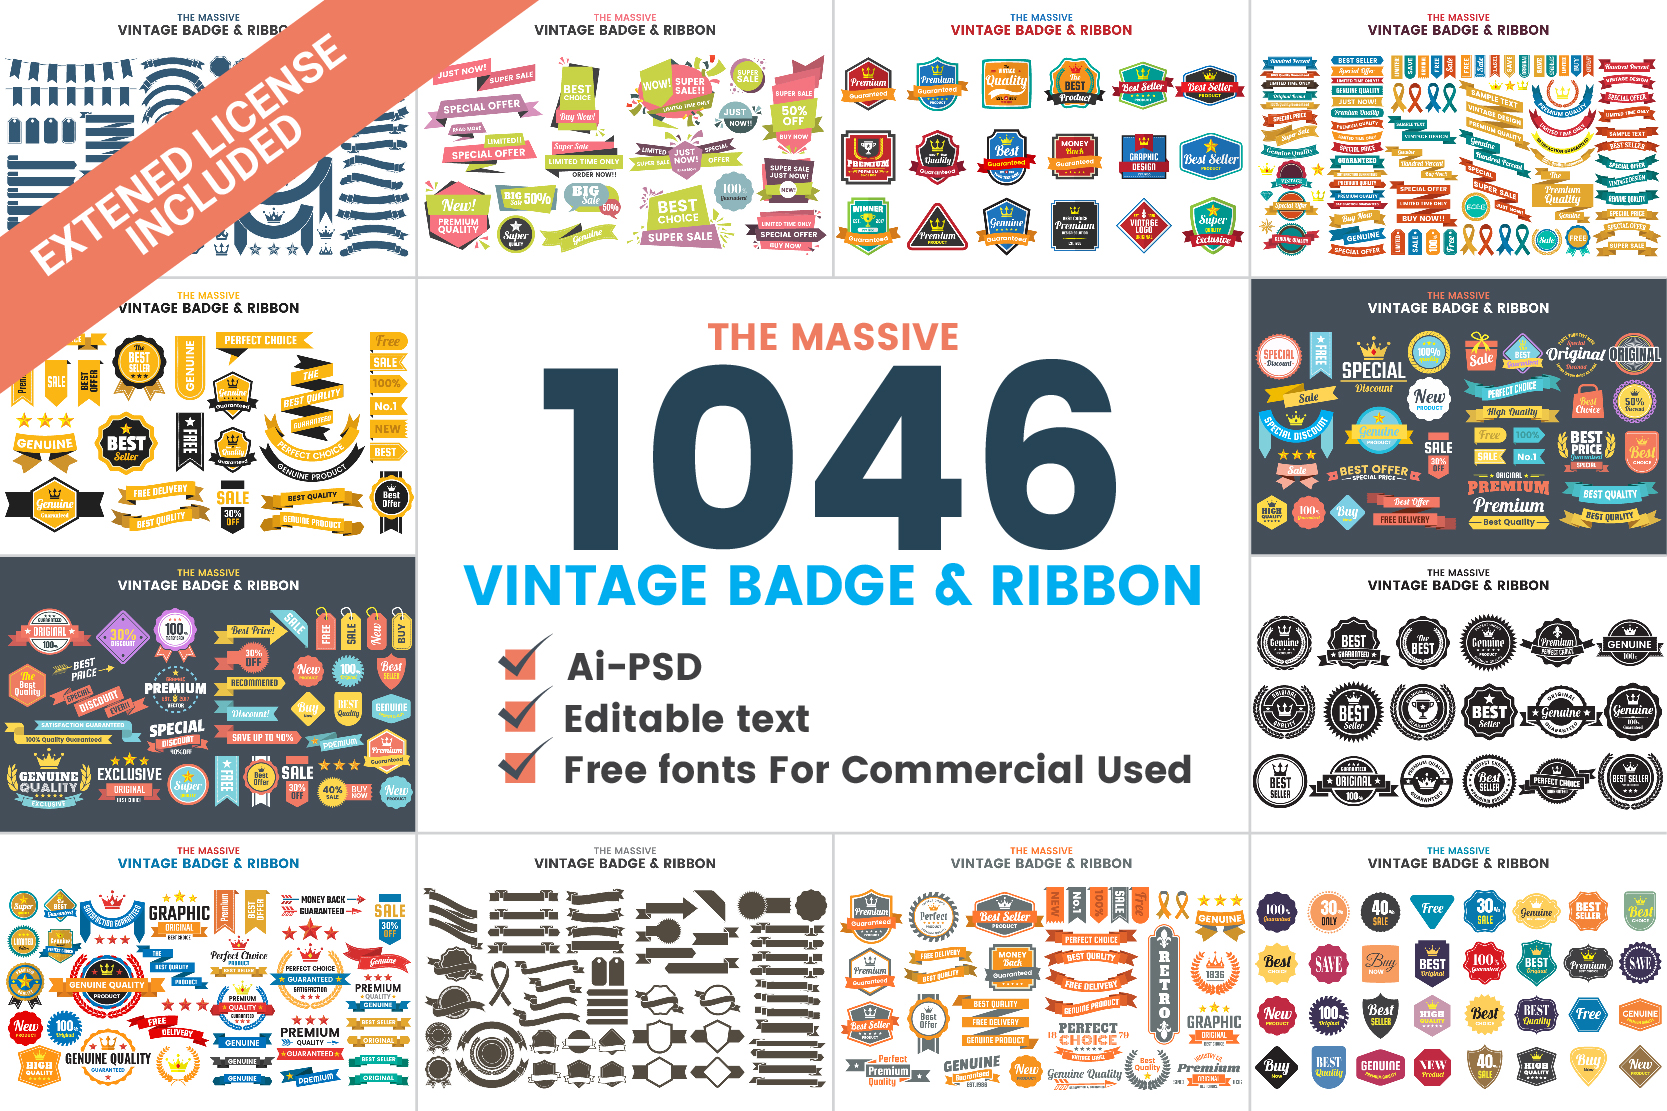 1046 VINTAGE BADGE & RIBBON Graphic Logos By toonsteb